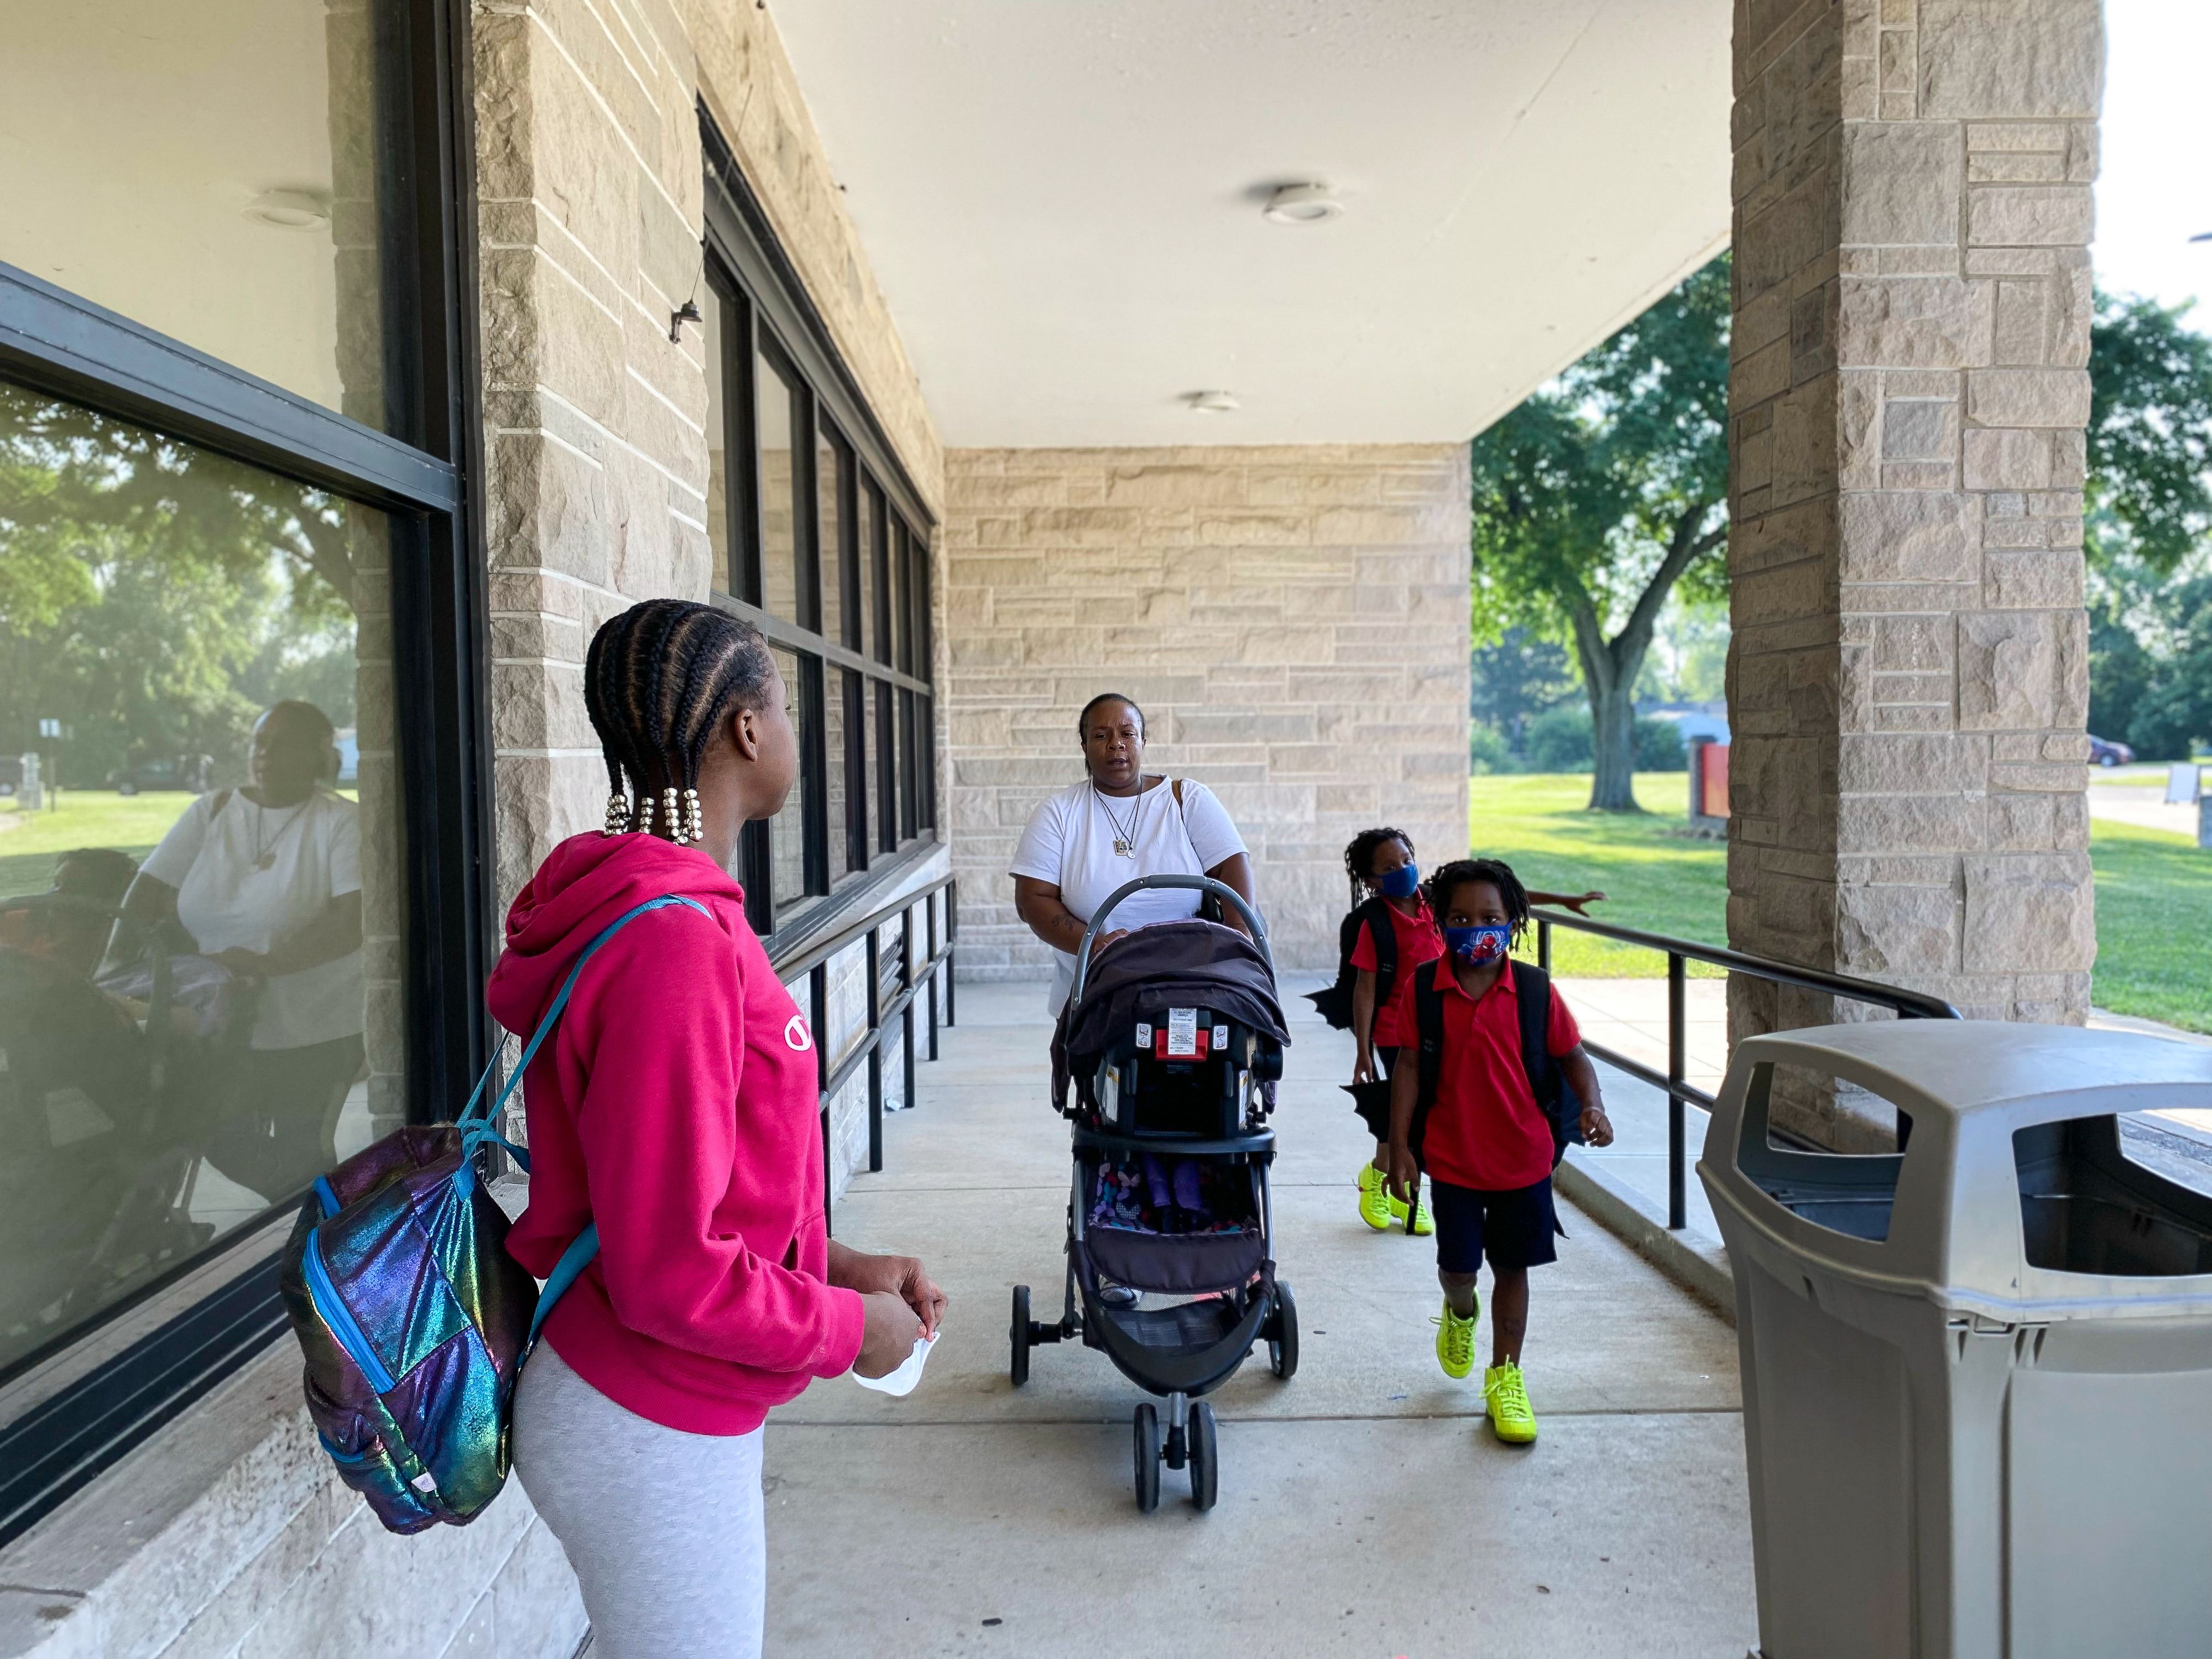 A parent walks pushing a stroller walks up a school ramp with two of her first graders and an older student wearing a backpack.